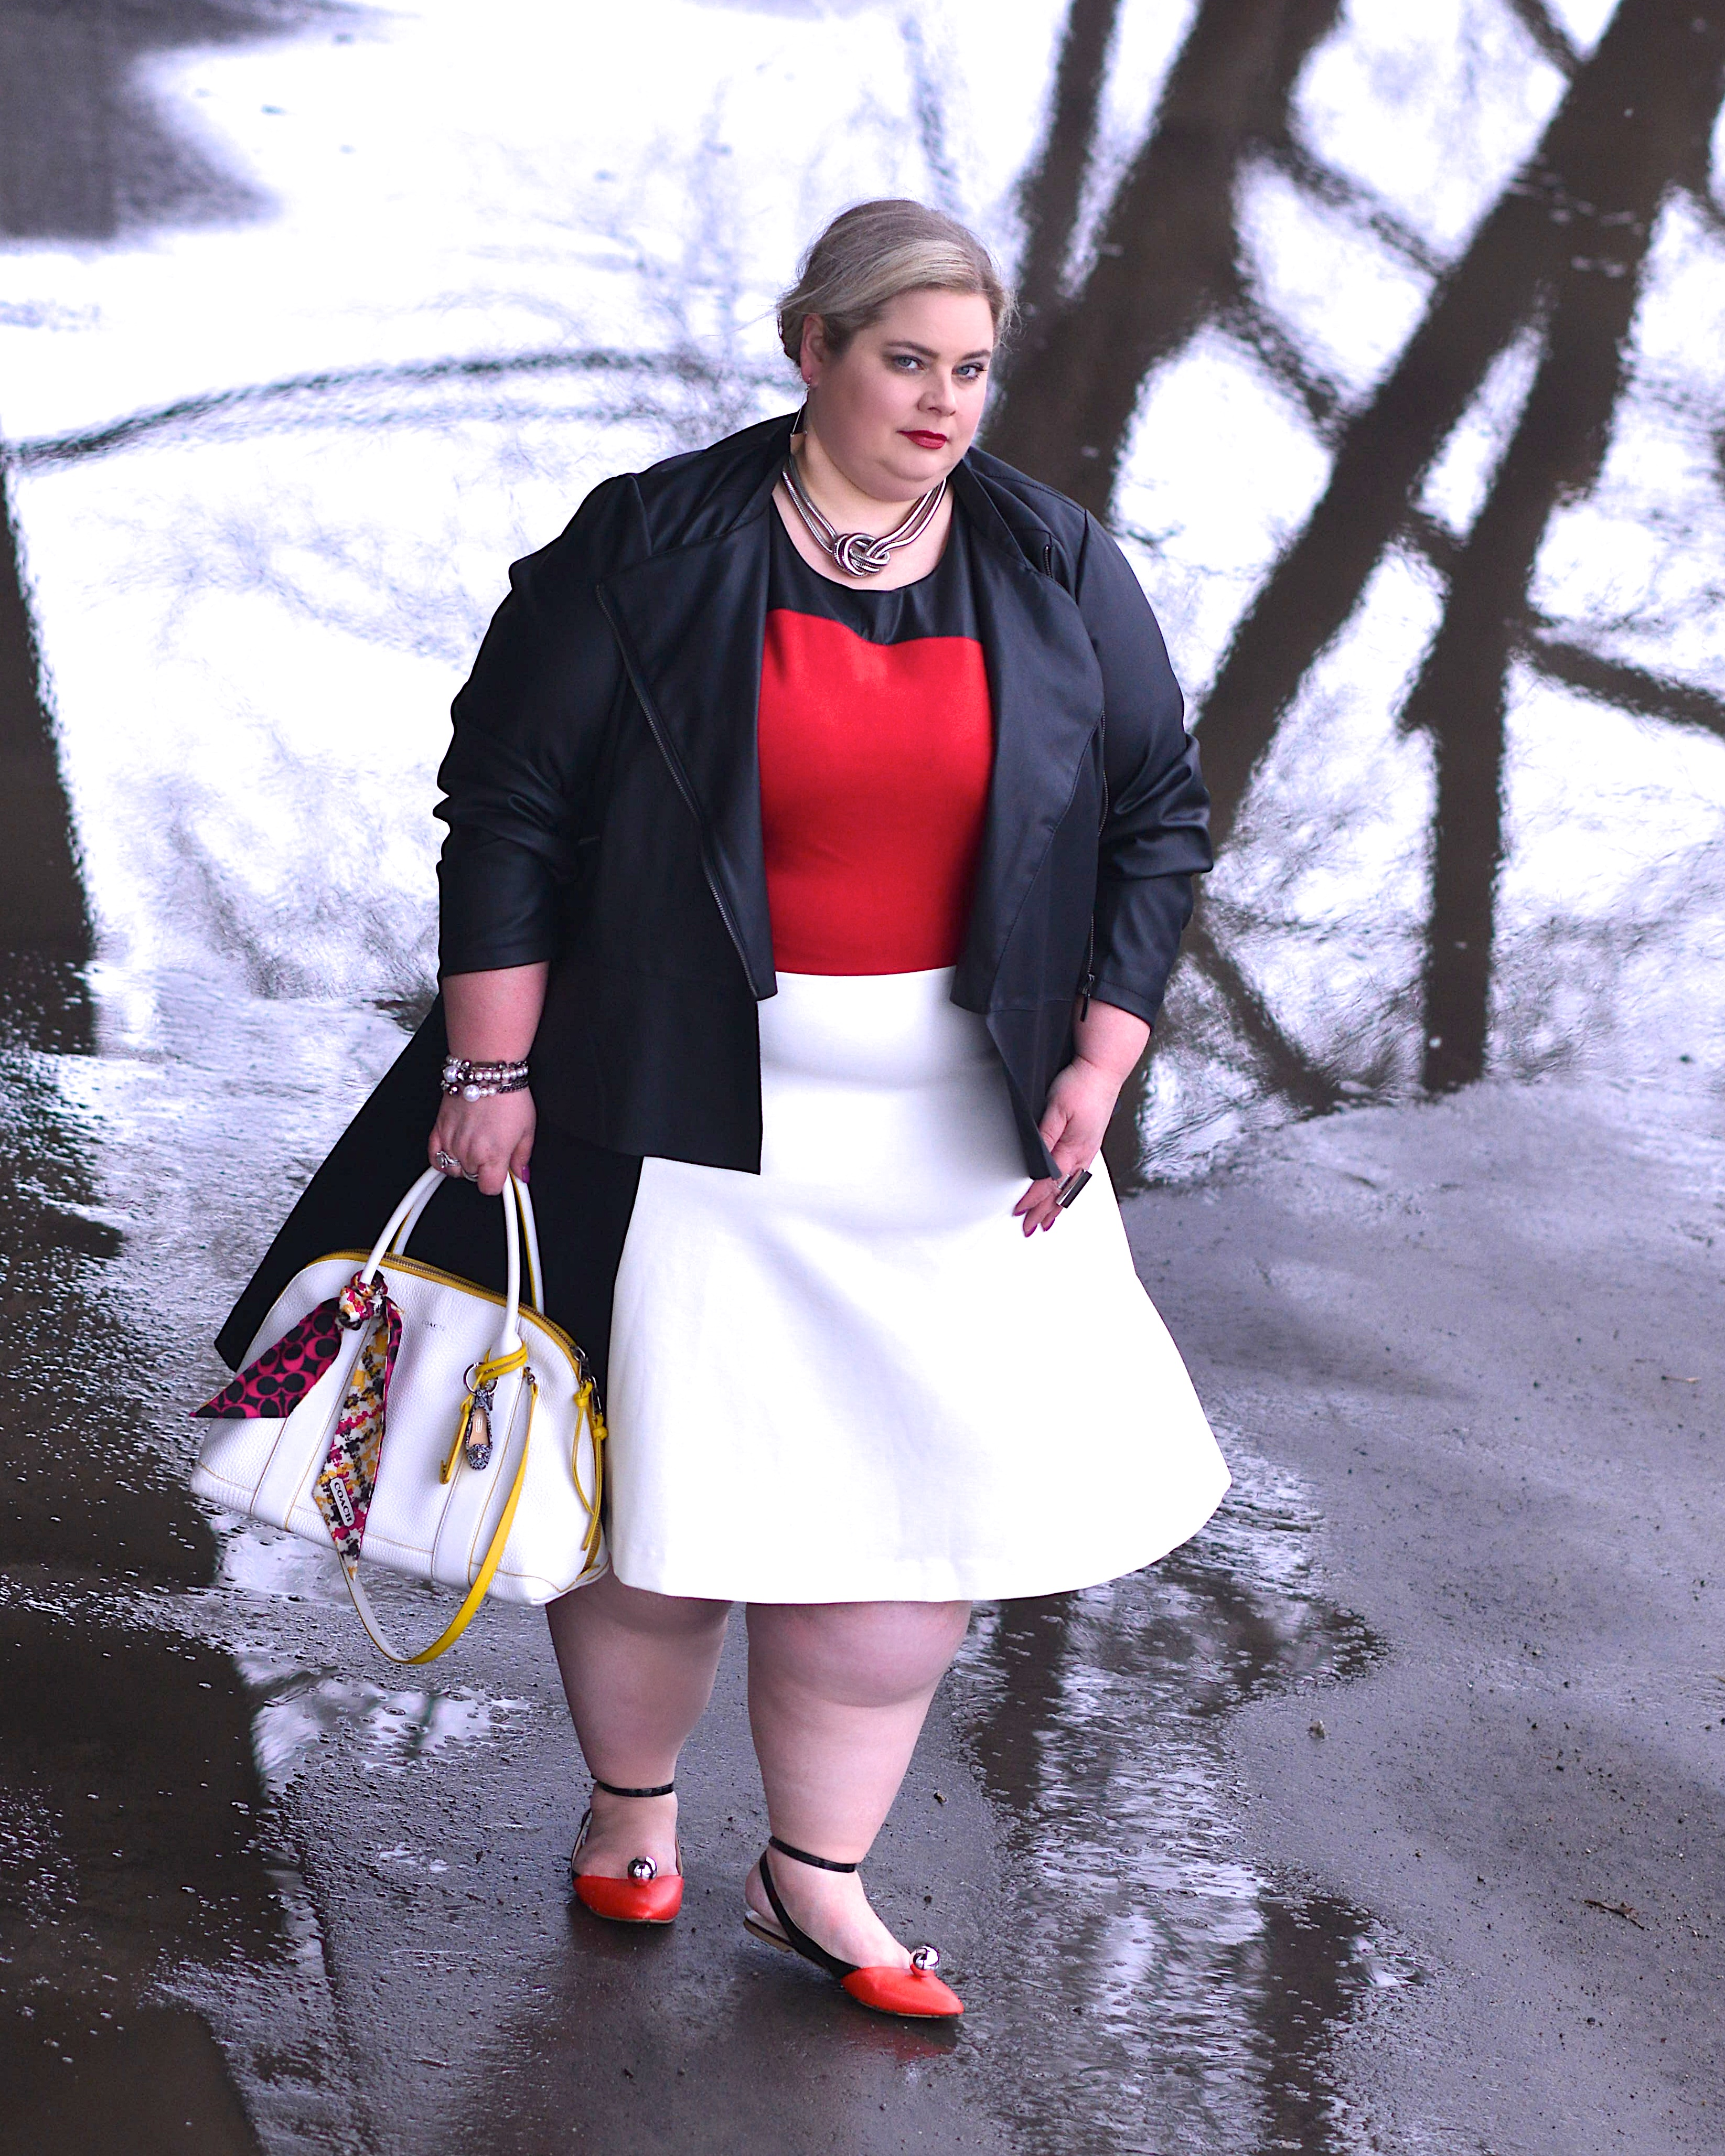 10eadc0eae40 For today s post I am finally getting around to reviewing the Prabal Gurung  x Lane Bryant collection. I have loved all of LB s designer collaborations  so of ...